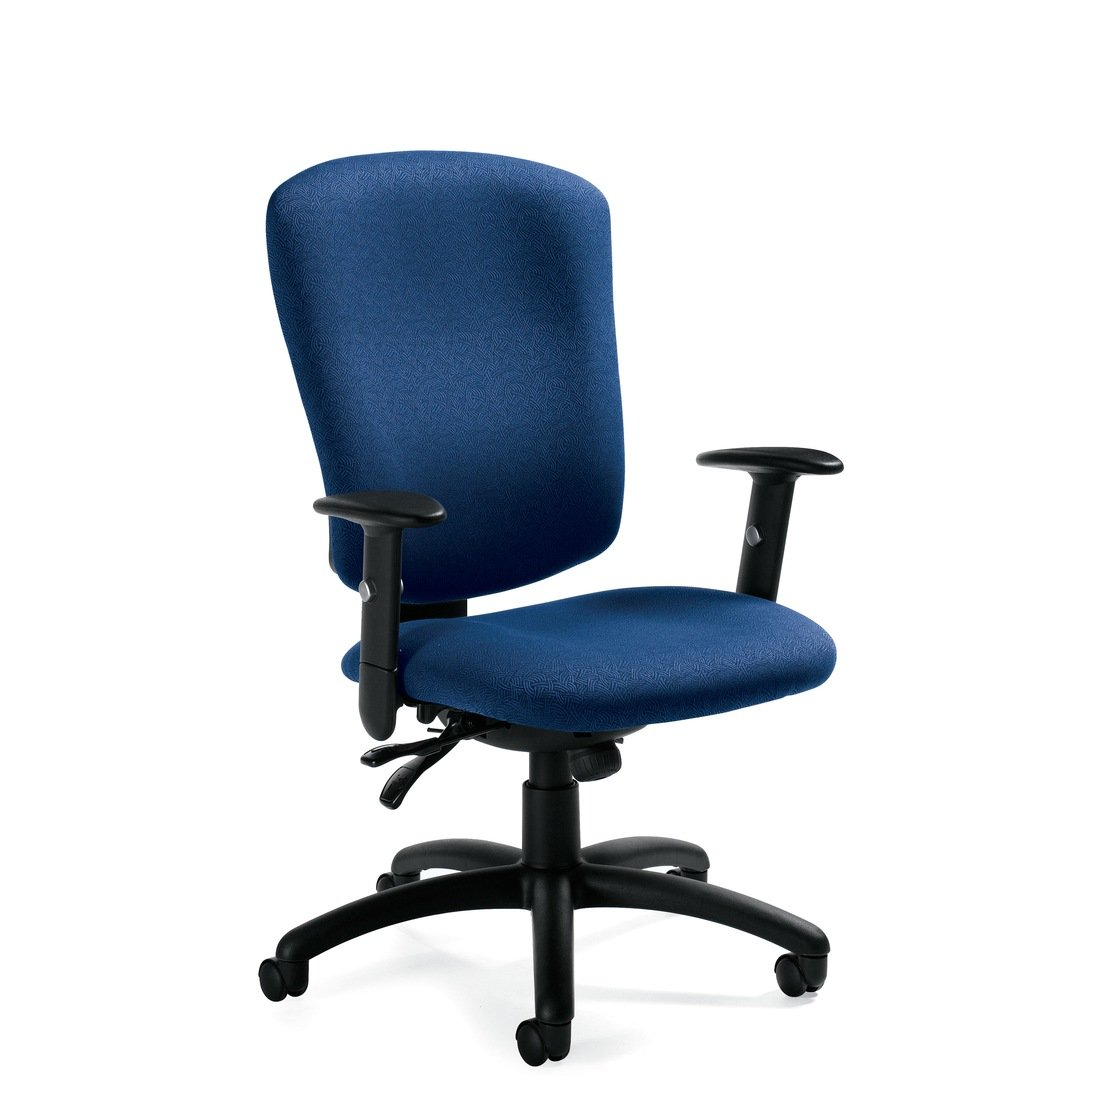 Supra X high back multi-tilter chair, model 5333-3. This chair has been placed on a white background.